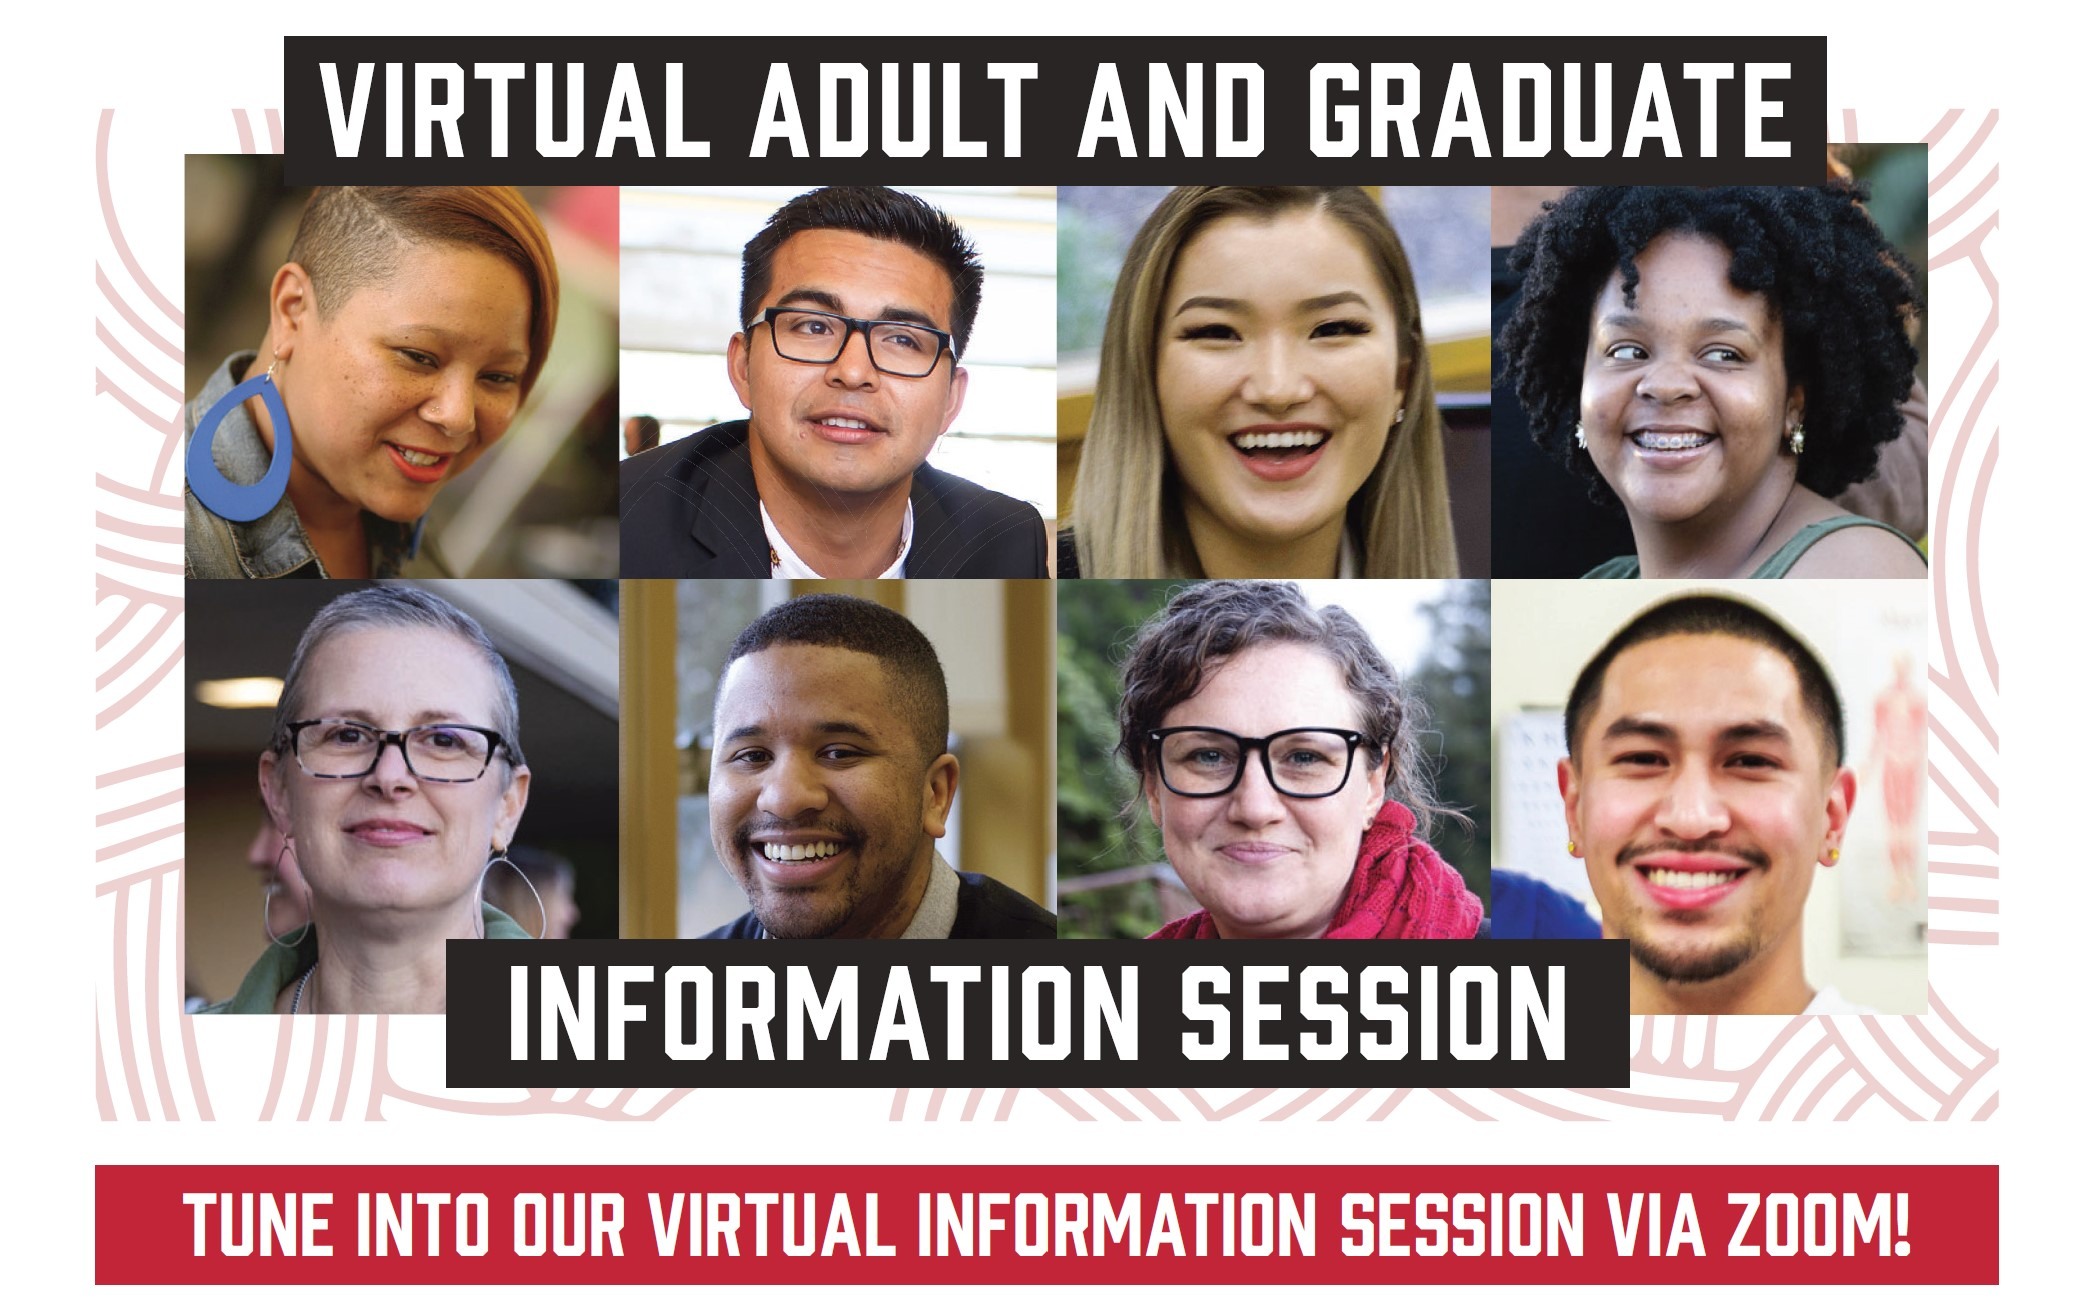 Attend a virtual infosession